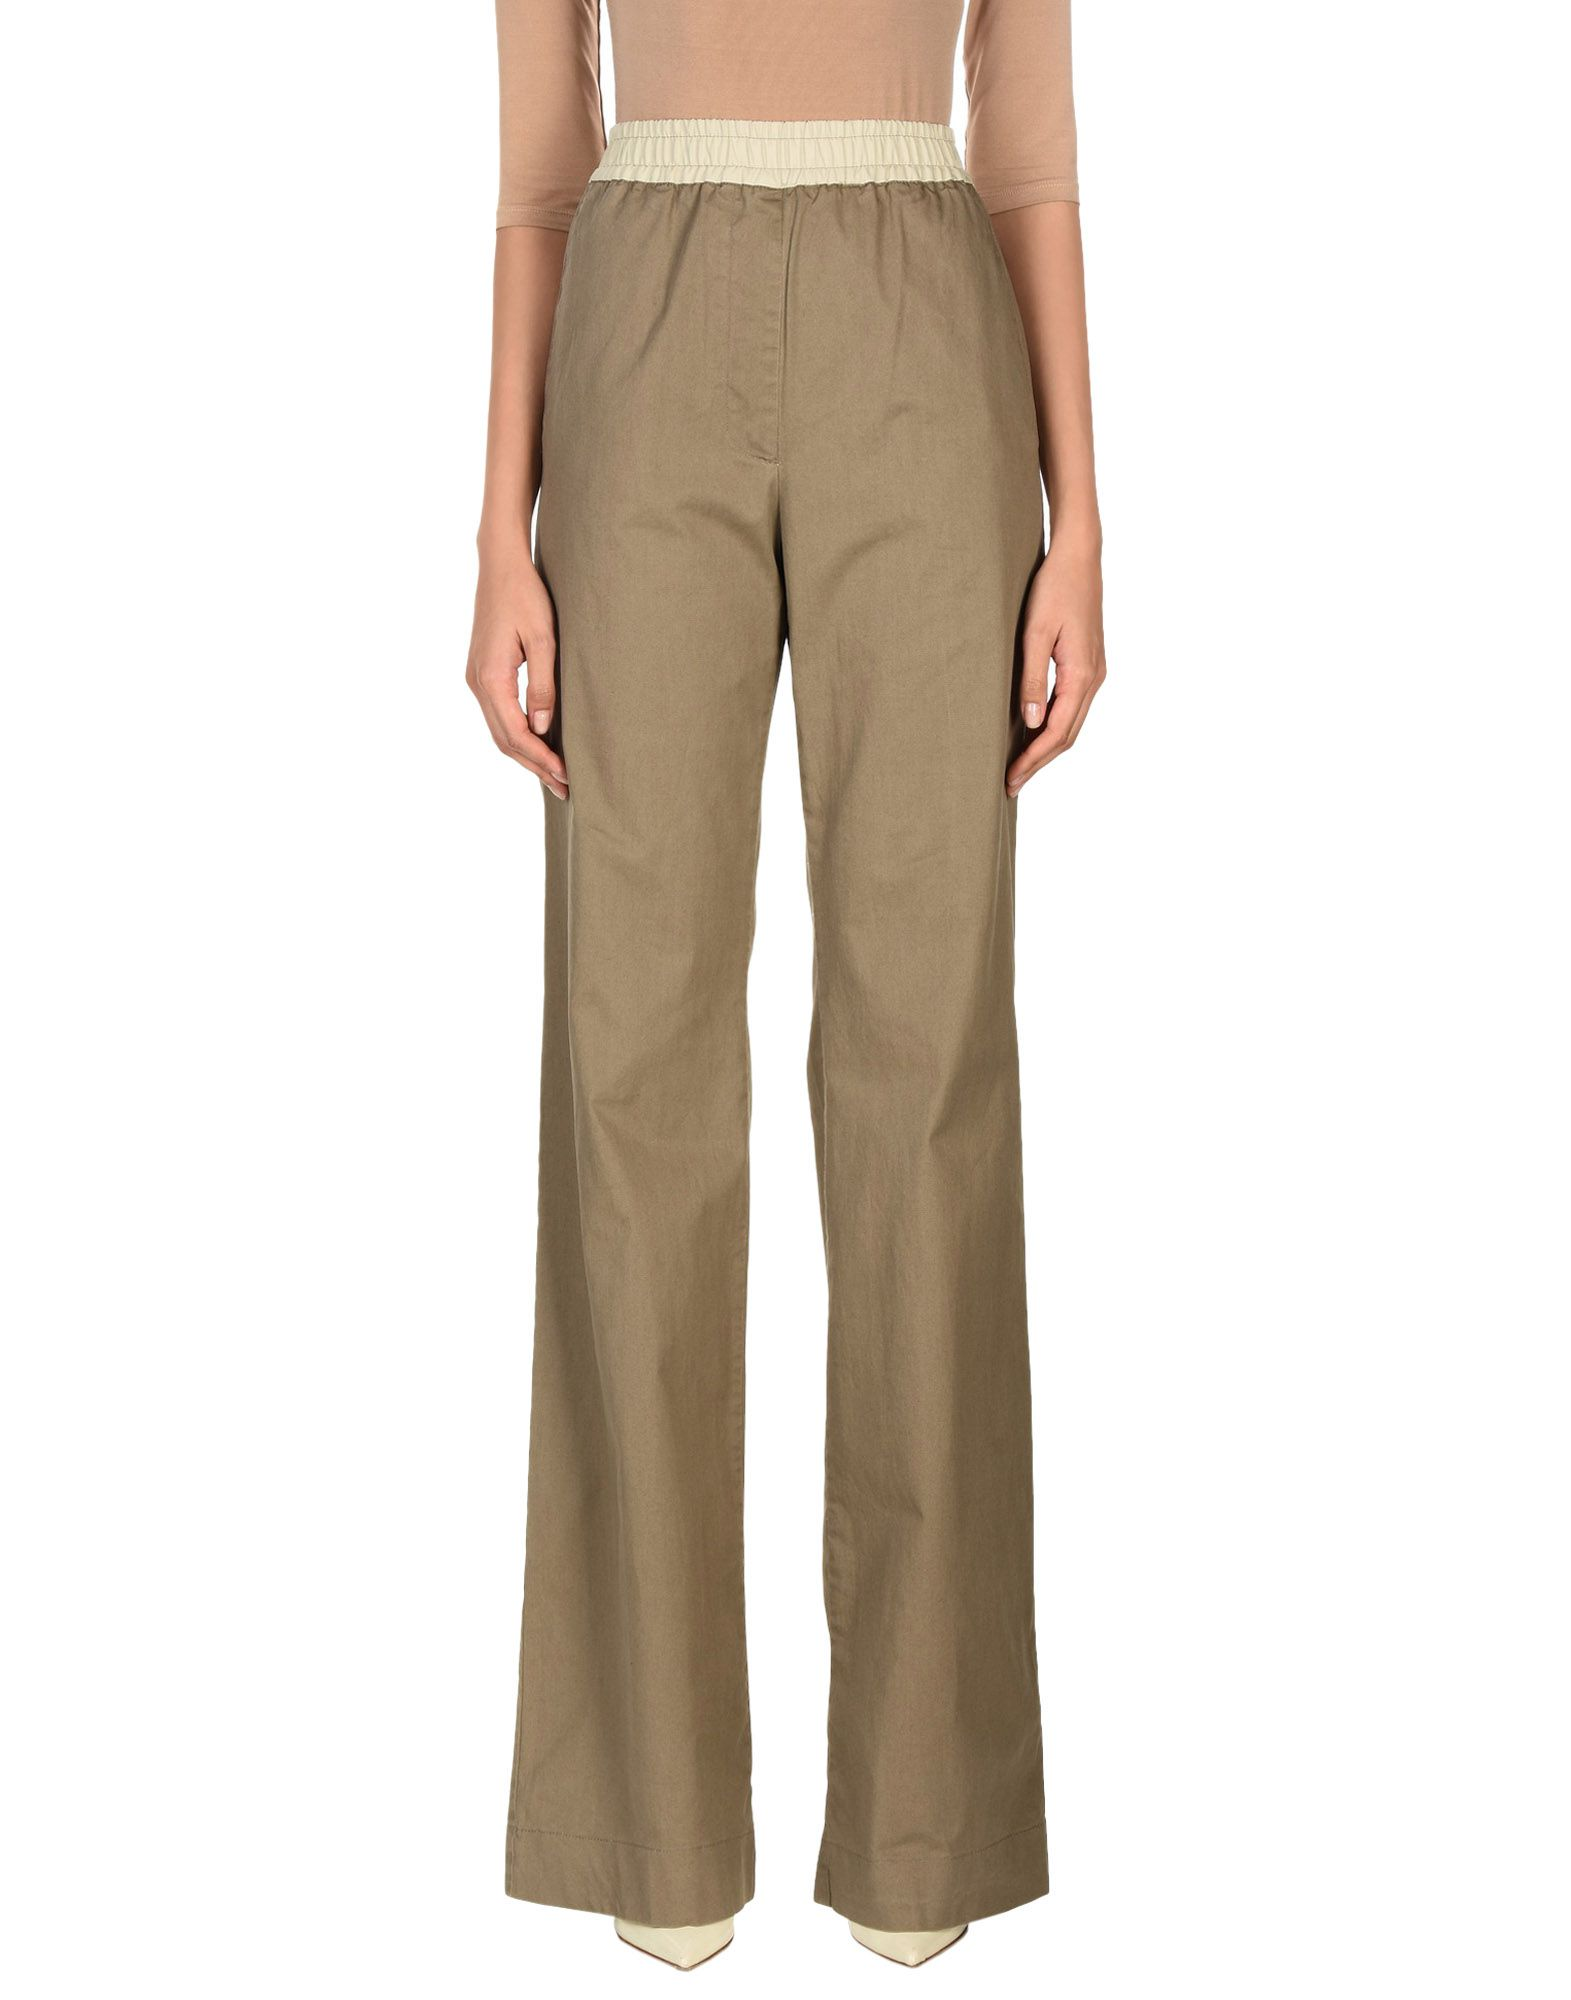 ANDREA INCONTRI Casual Pants in Khaki